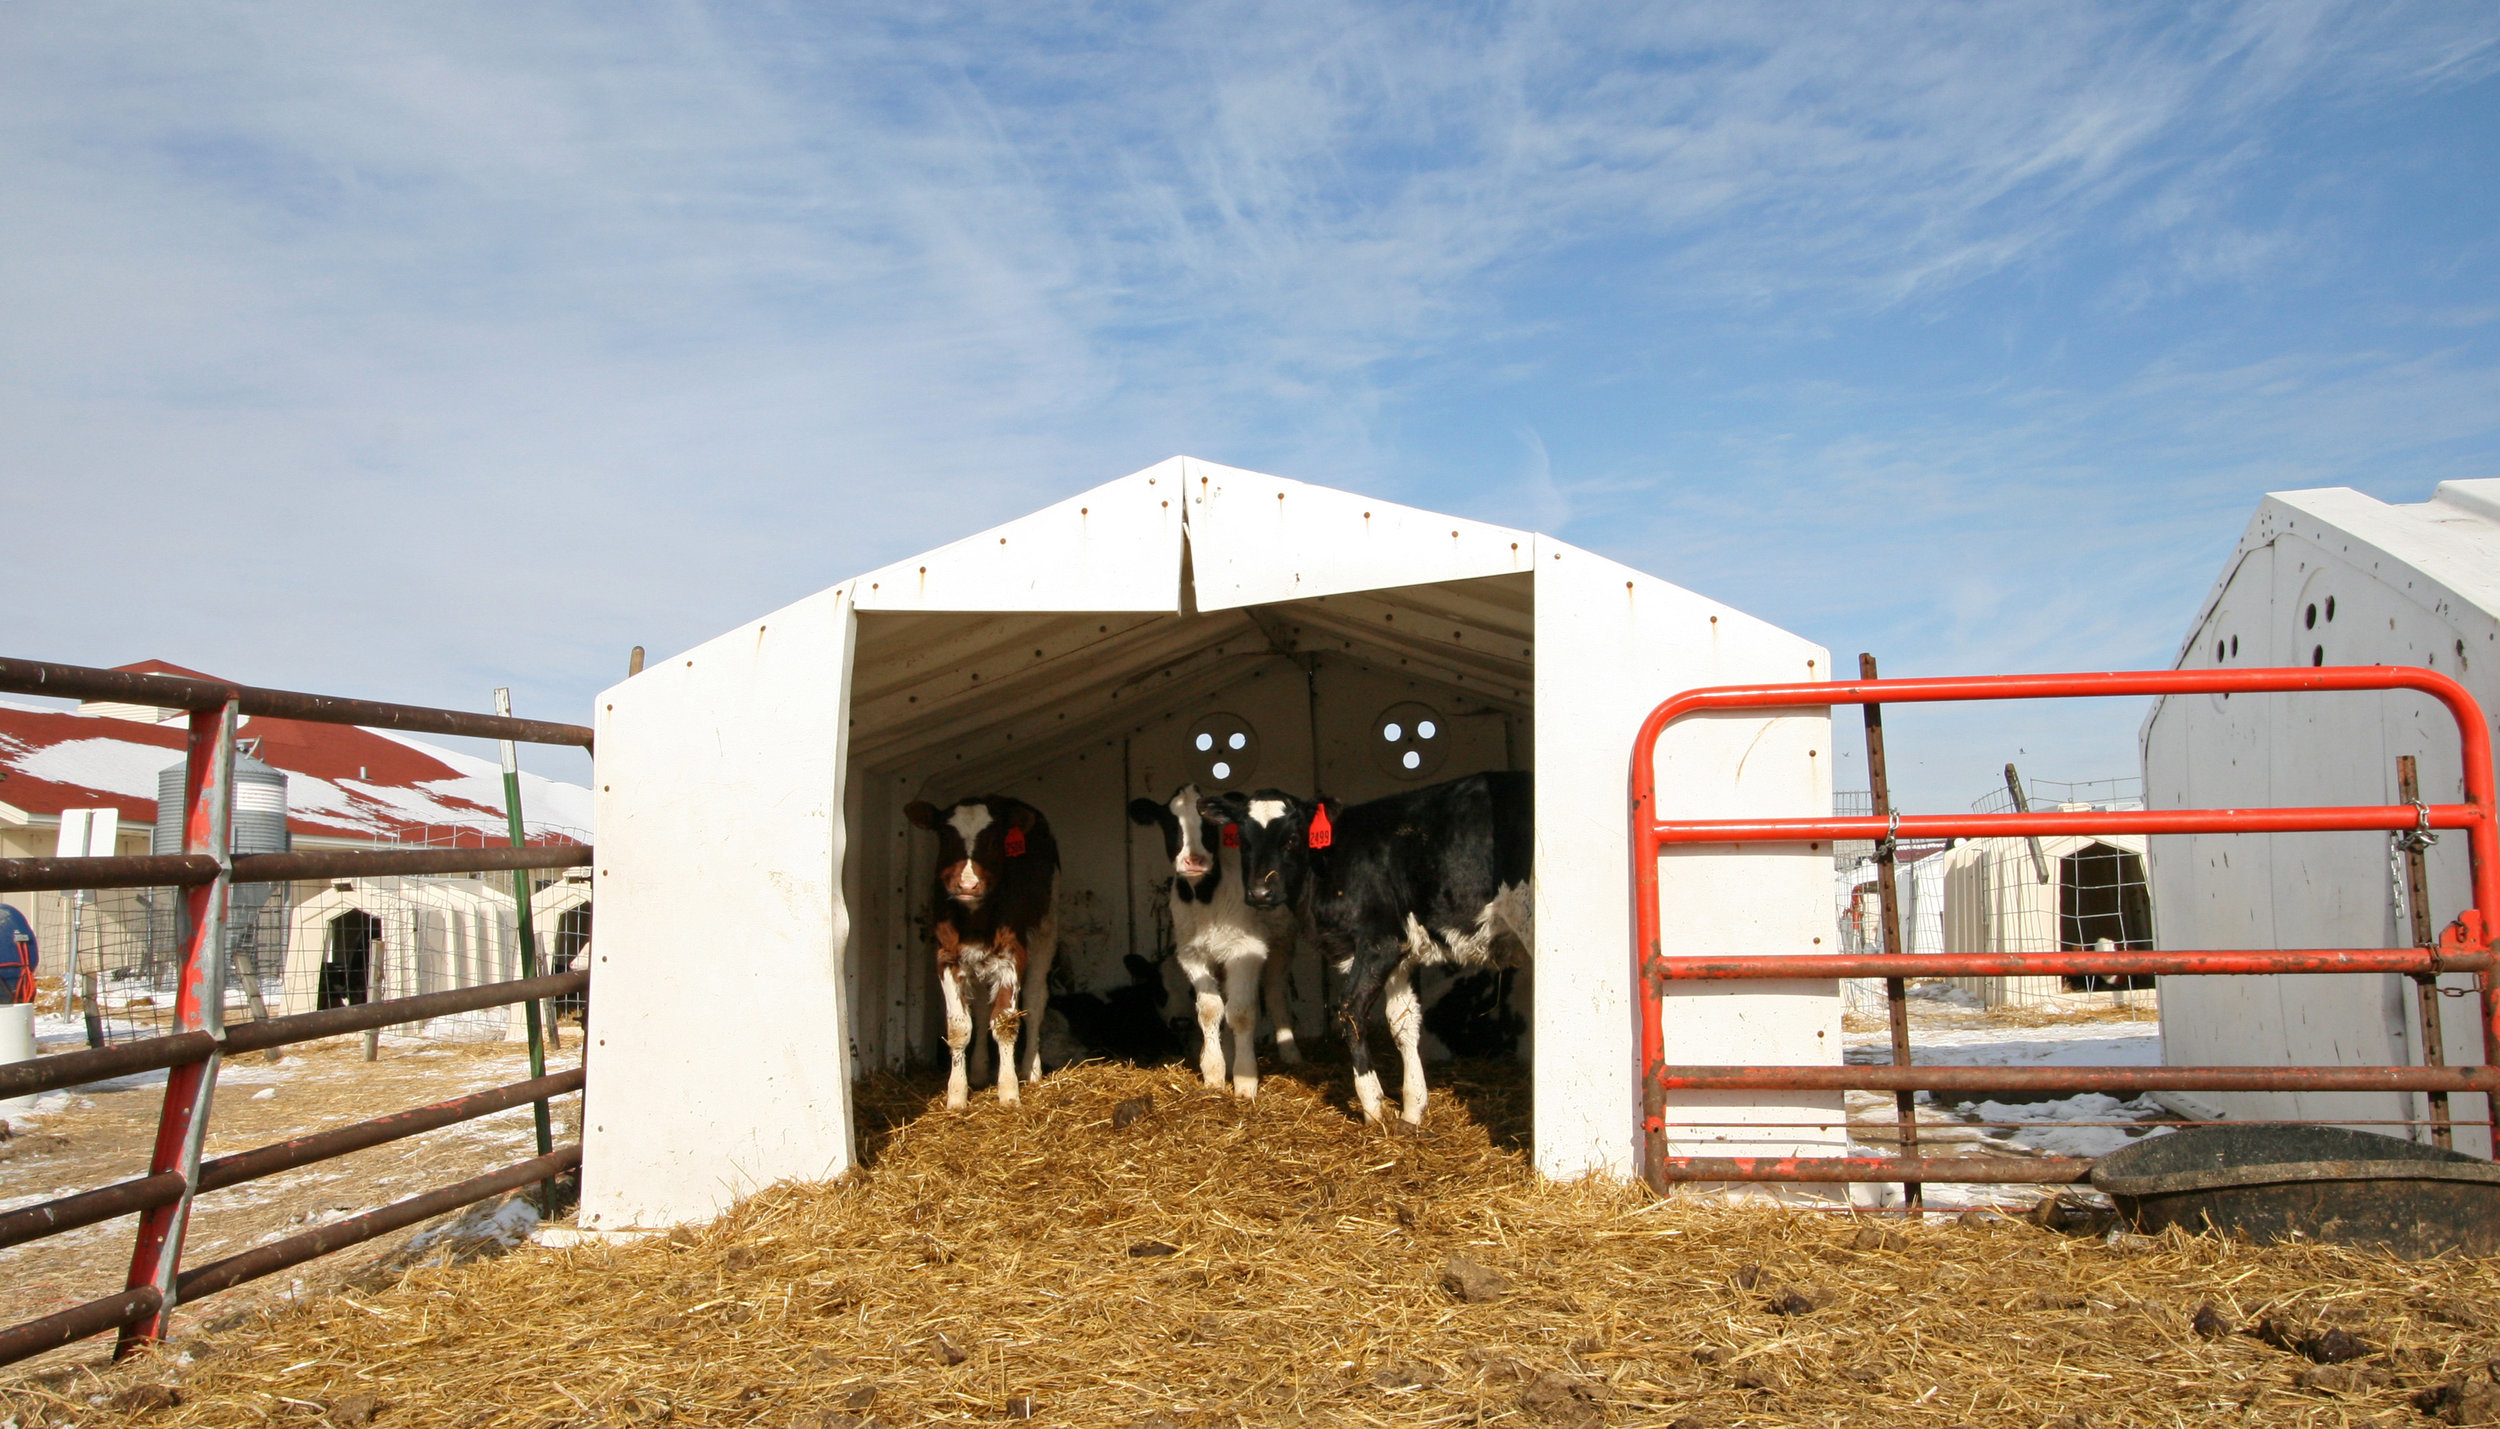 Image of calves in calve shed on farm. Image by Richard Yuan.